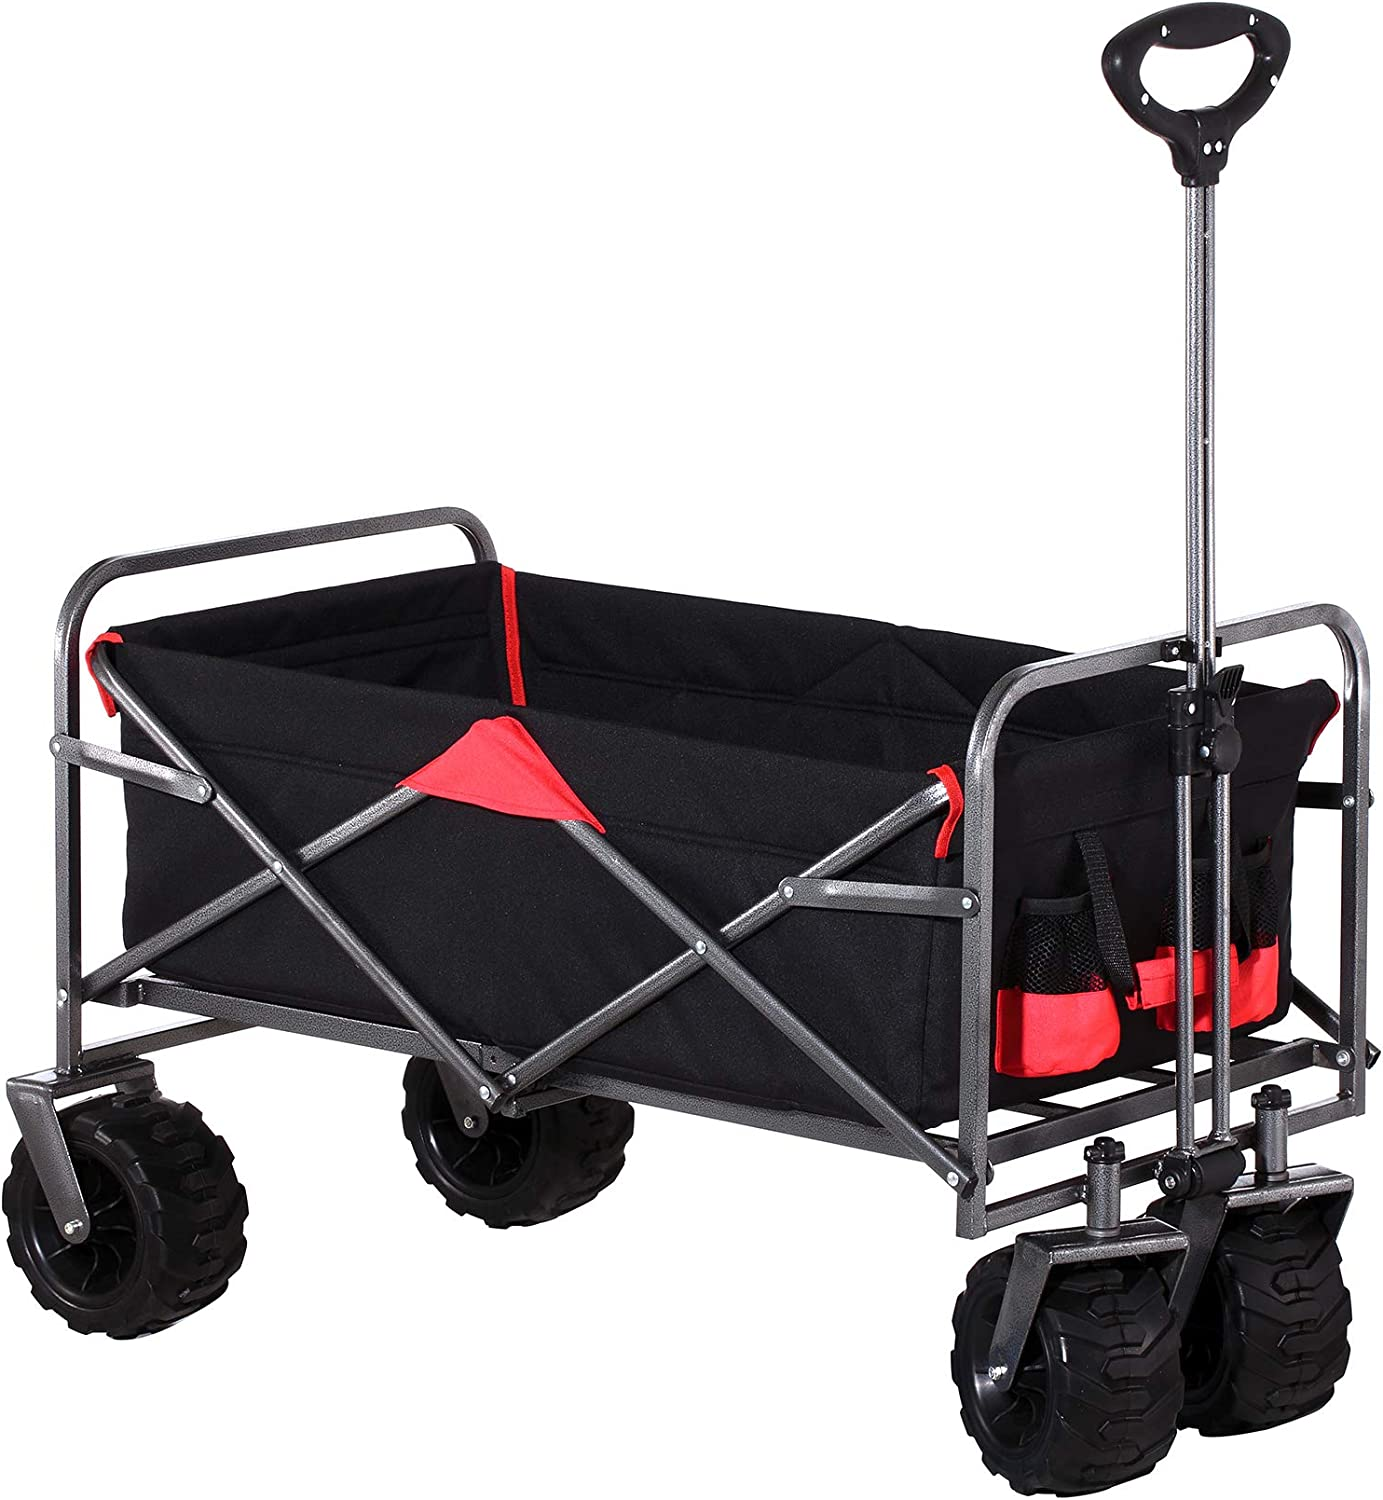 Outdoor Innovations Heavy Duty Collapsible All Terrain Folding Beach Wagon Utility Cart (Black/Red)